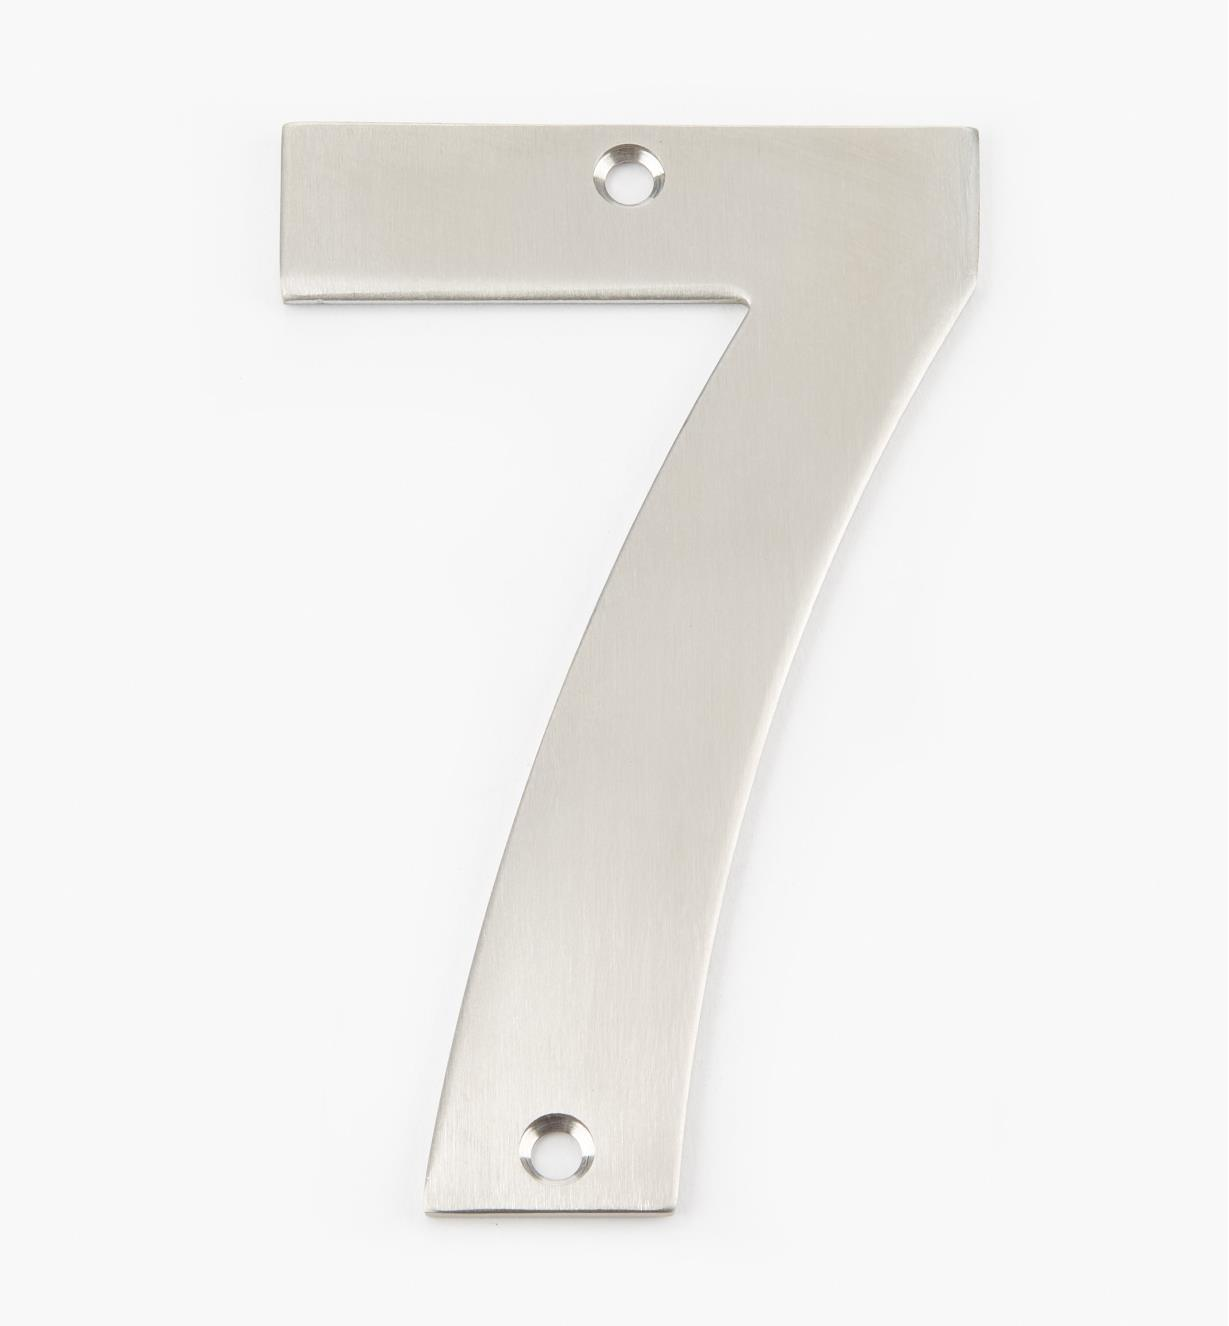 00W0897 - 130mm Stainless-Steel House Number - 7